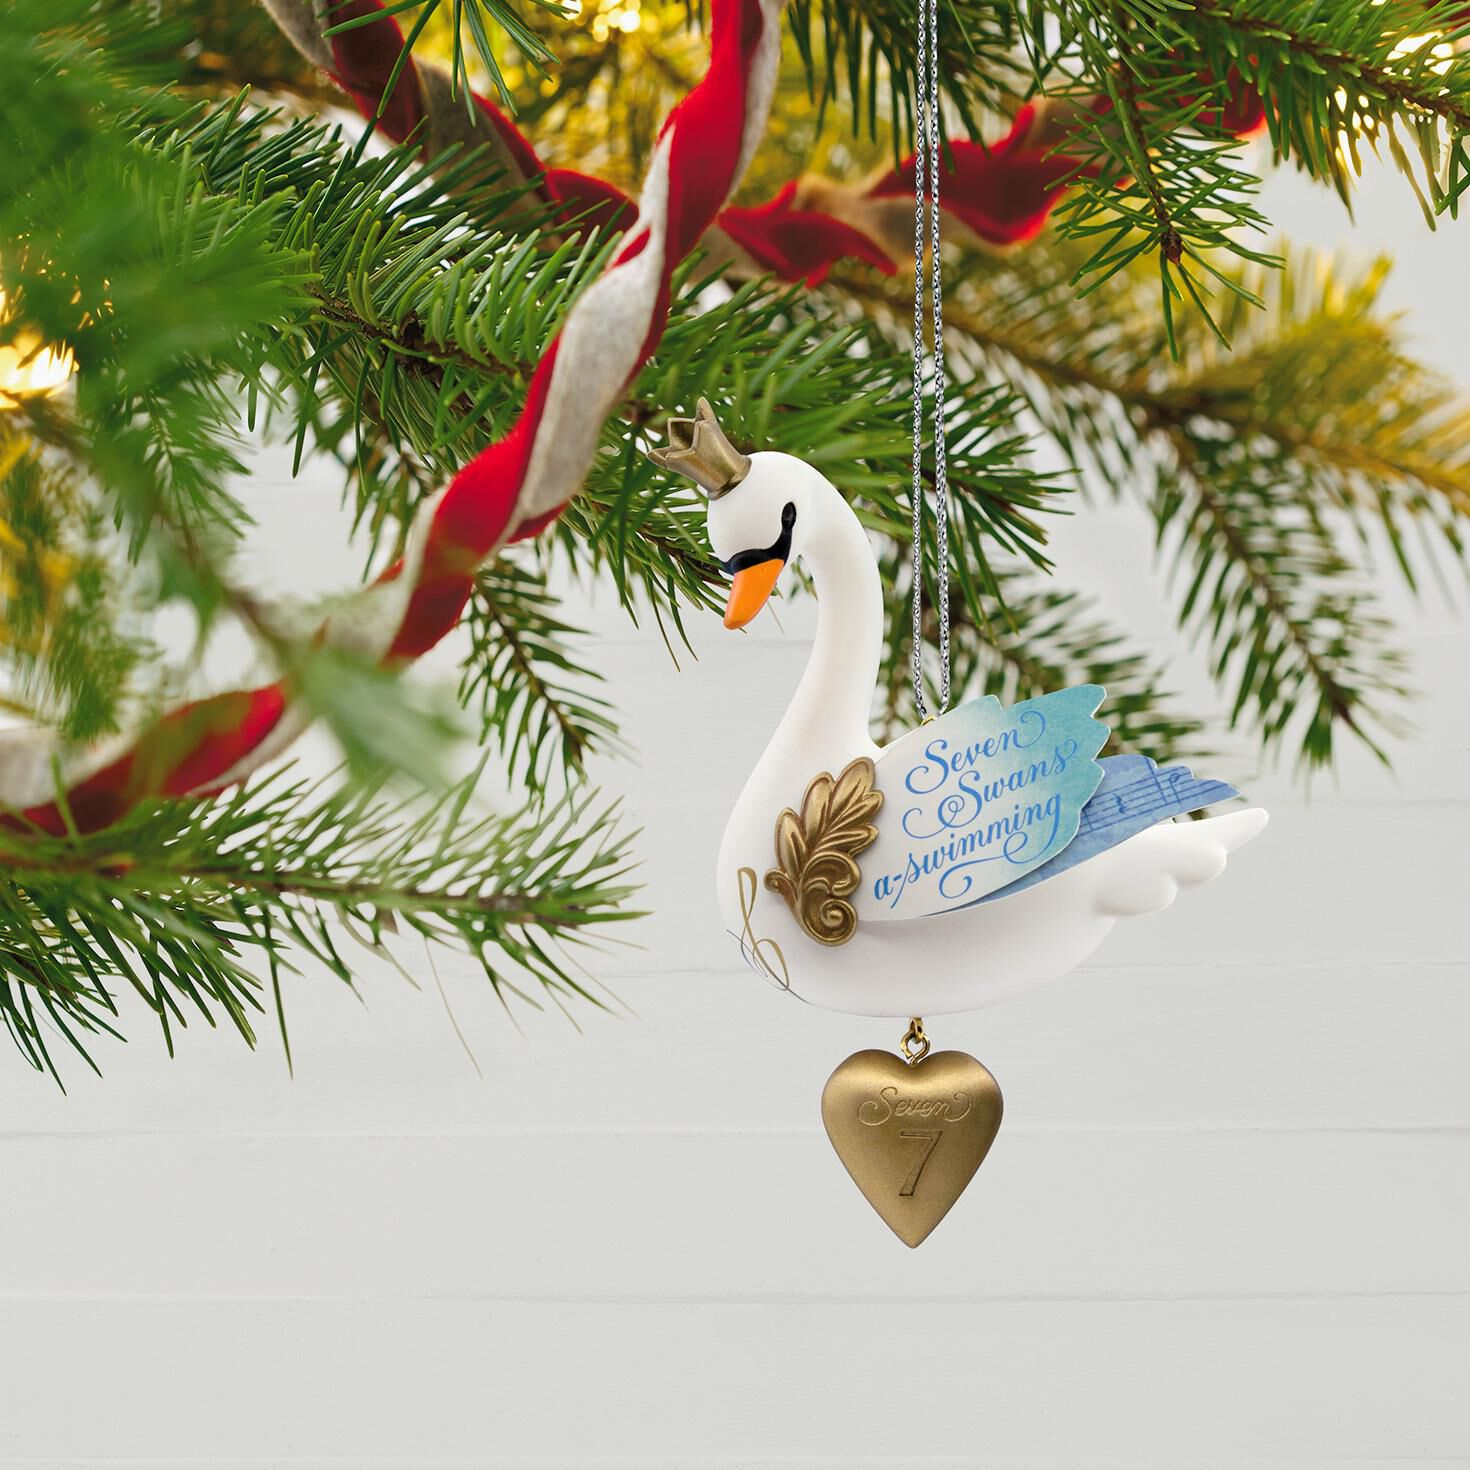 Seven Swans-a-Swimming Twelve Days of Christmas Ornament ...